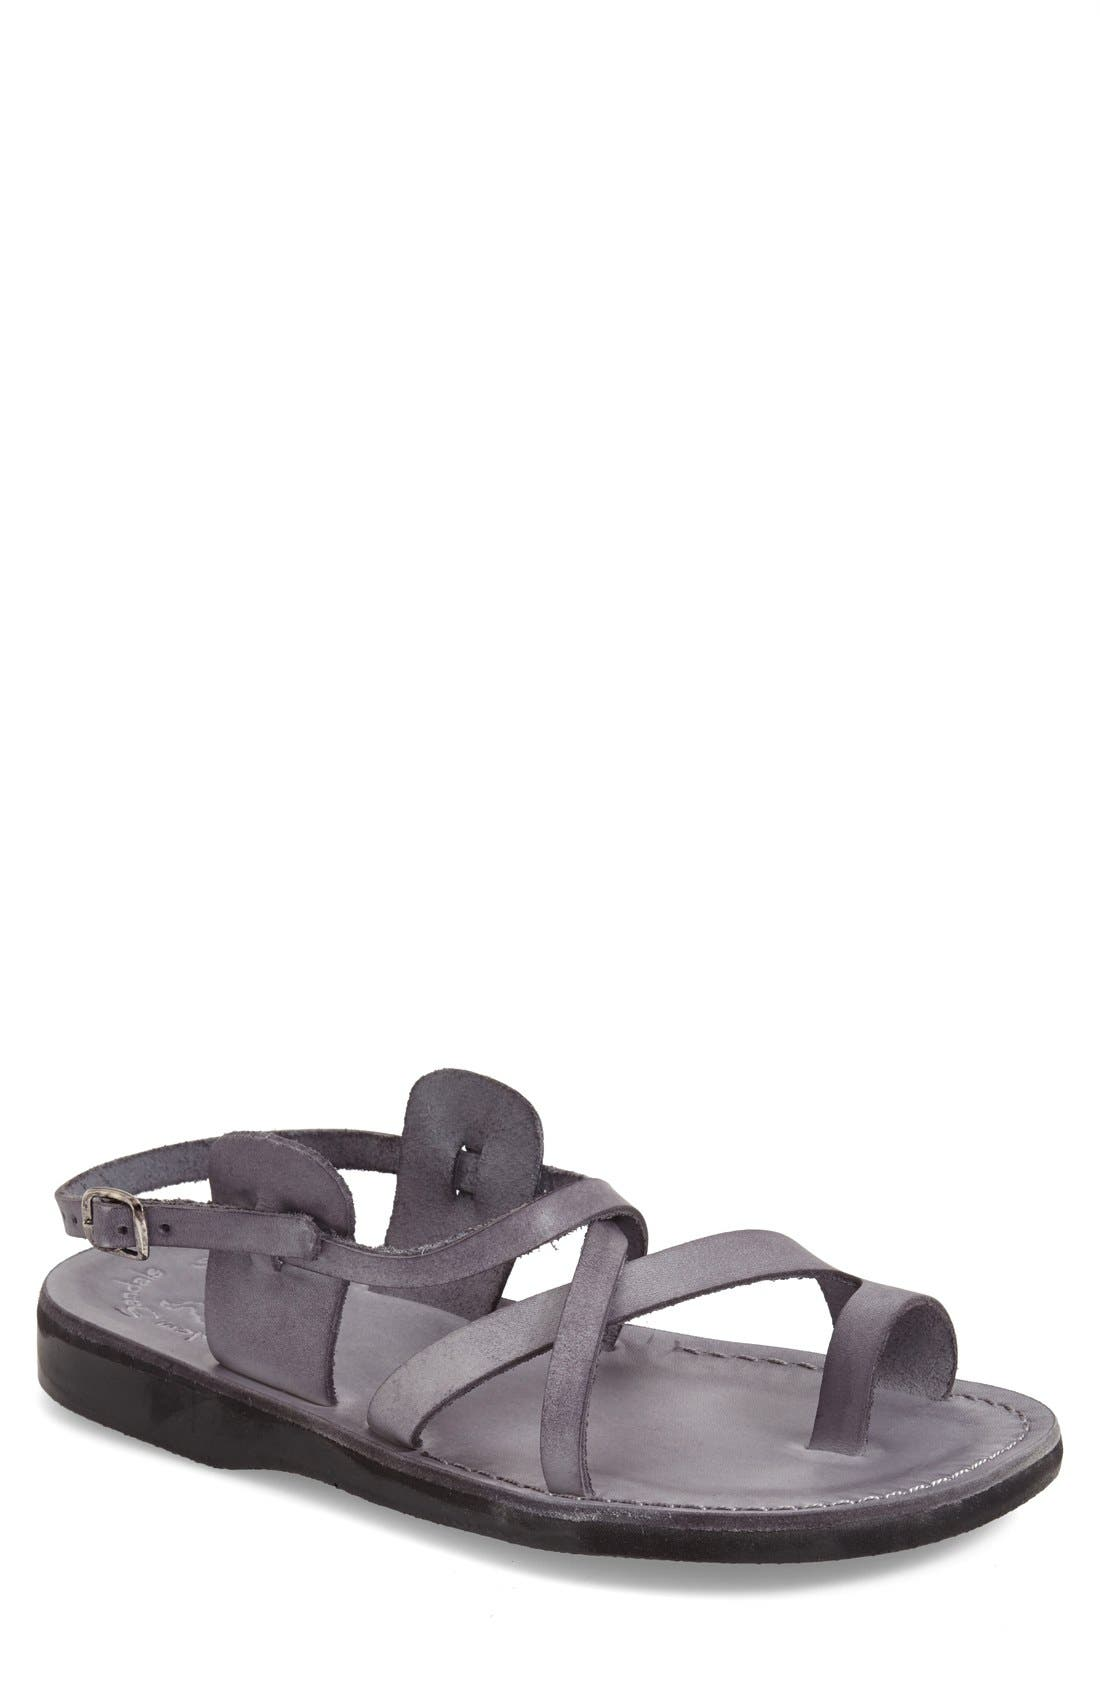 'The Good Shepherd' Leather Sandal,                         Main,                         color, GREY LEATHER